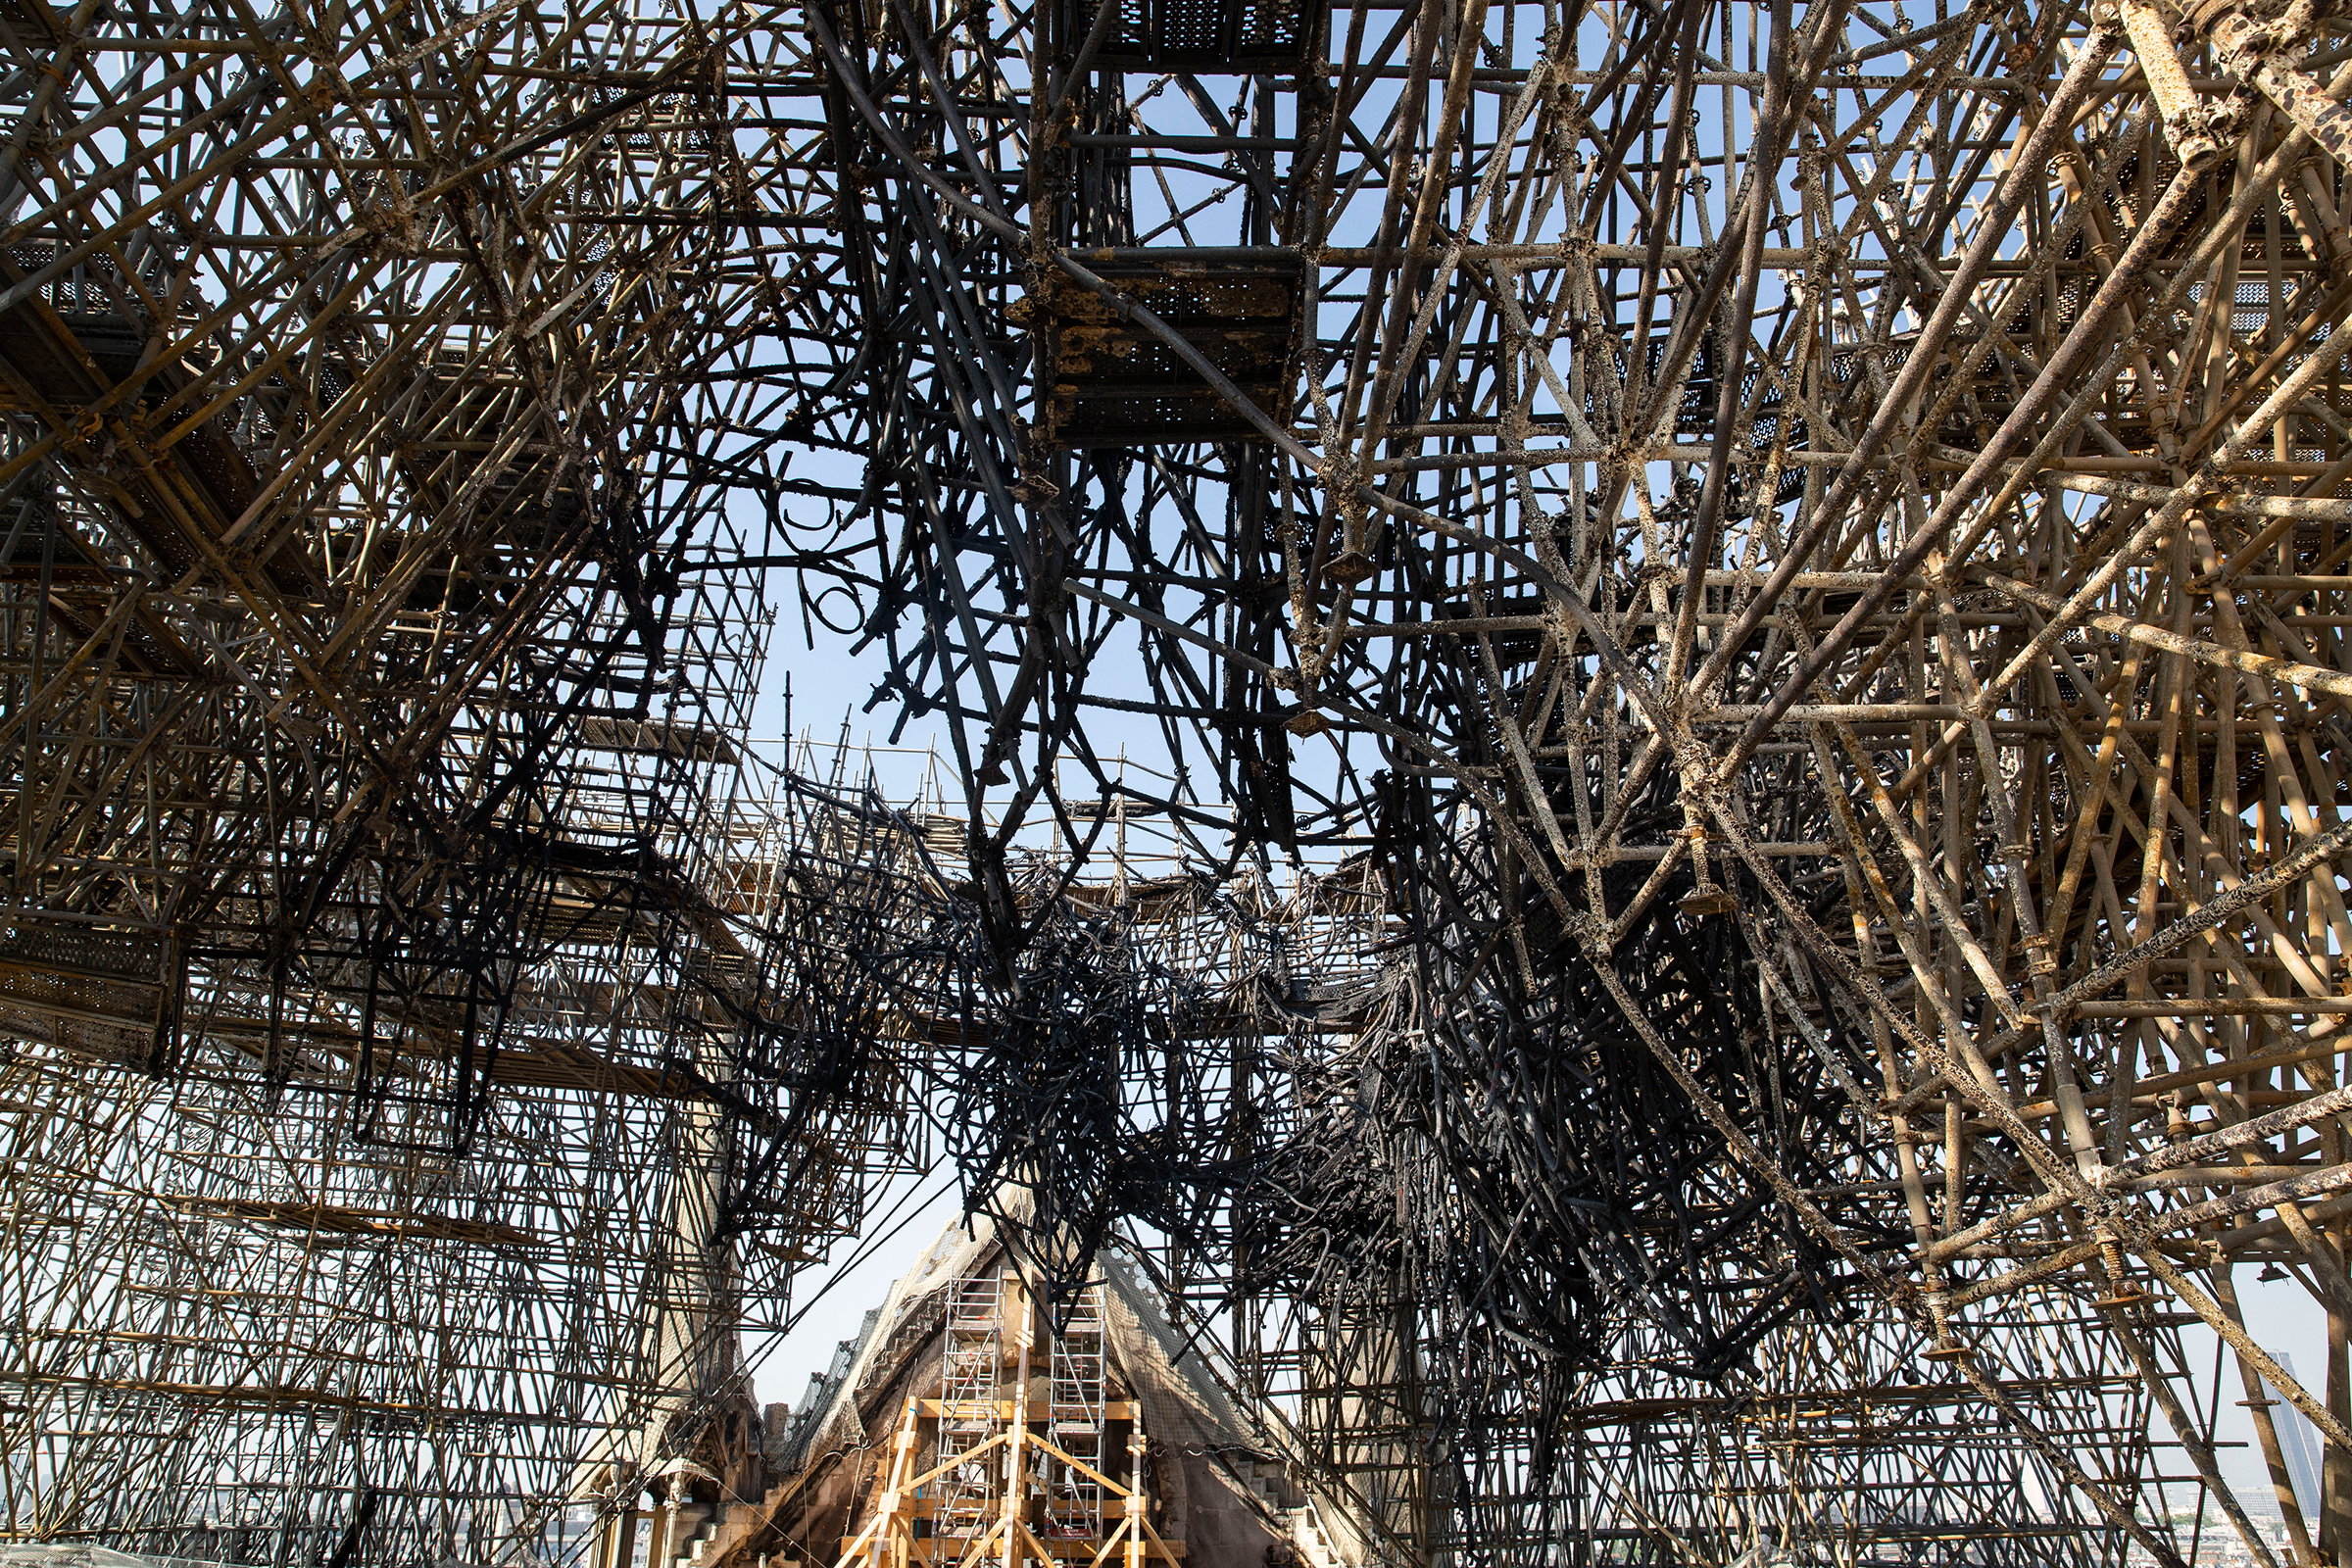 Much of the roof's frame is now just a giant tangle of molten lead.